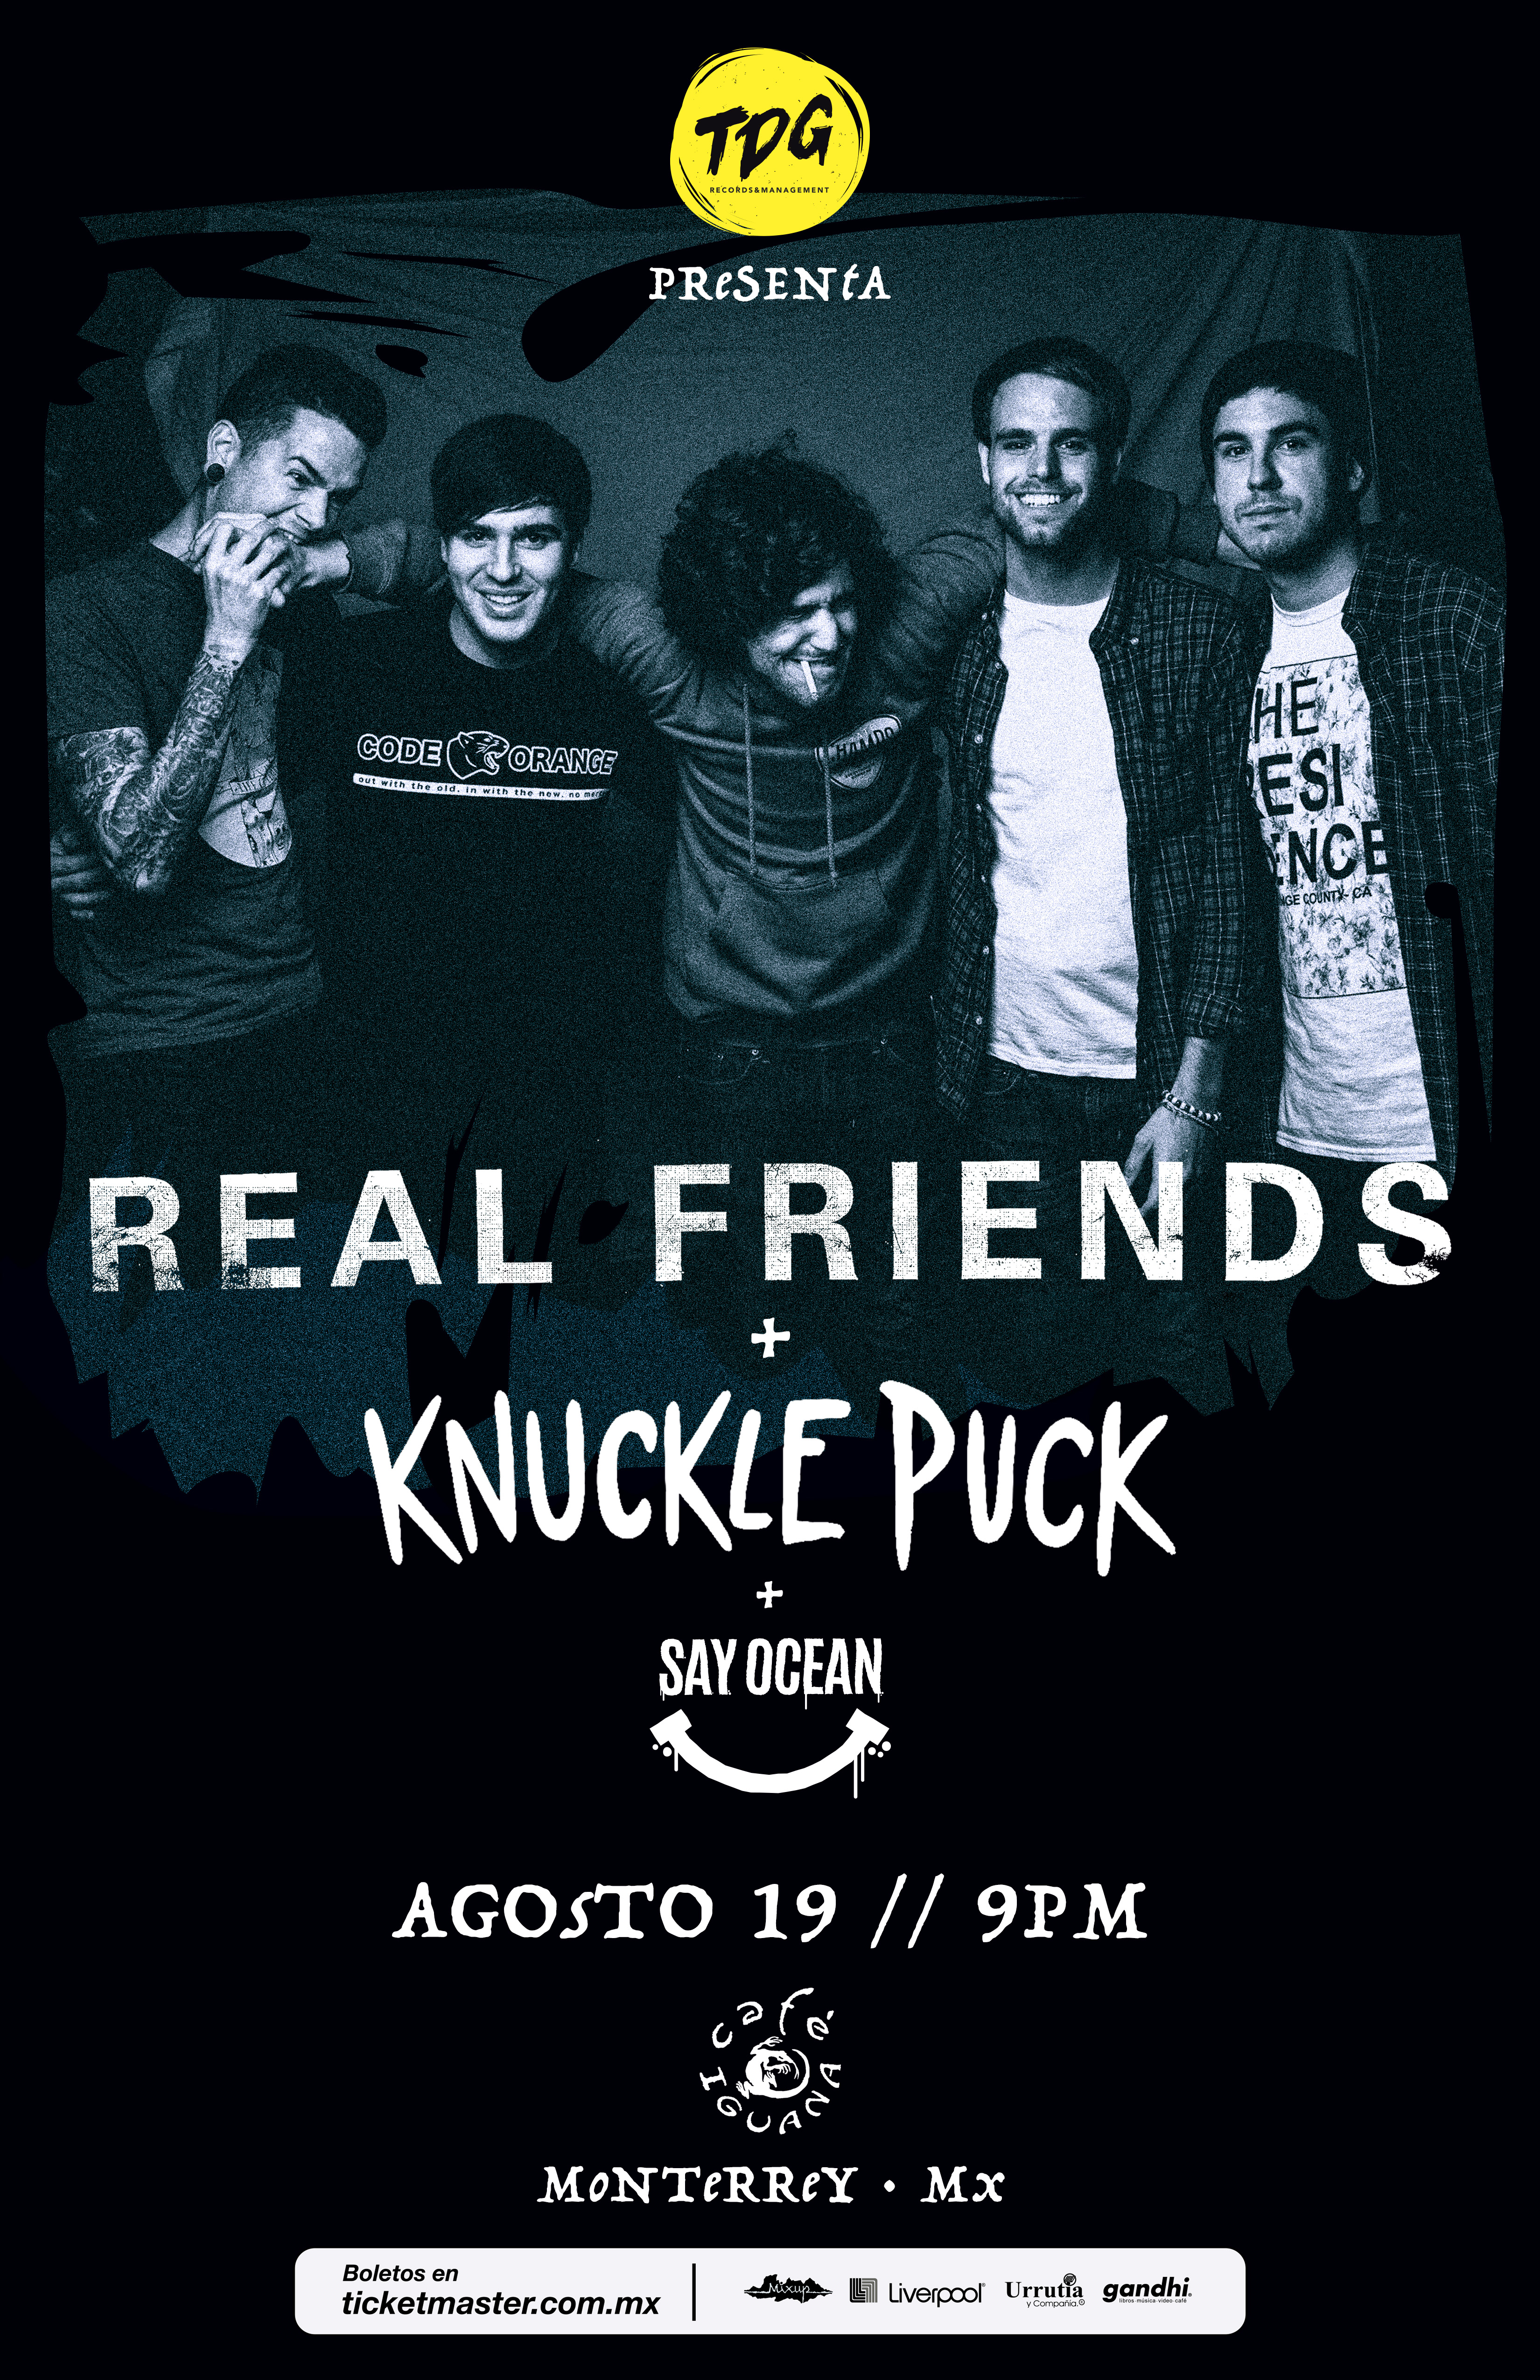 Real Friends + Knuckle Puck